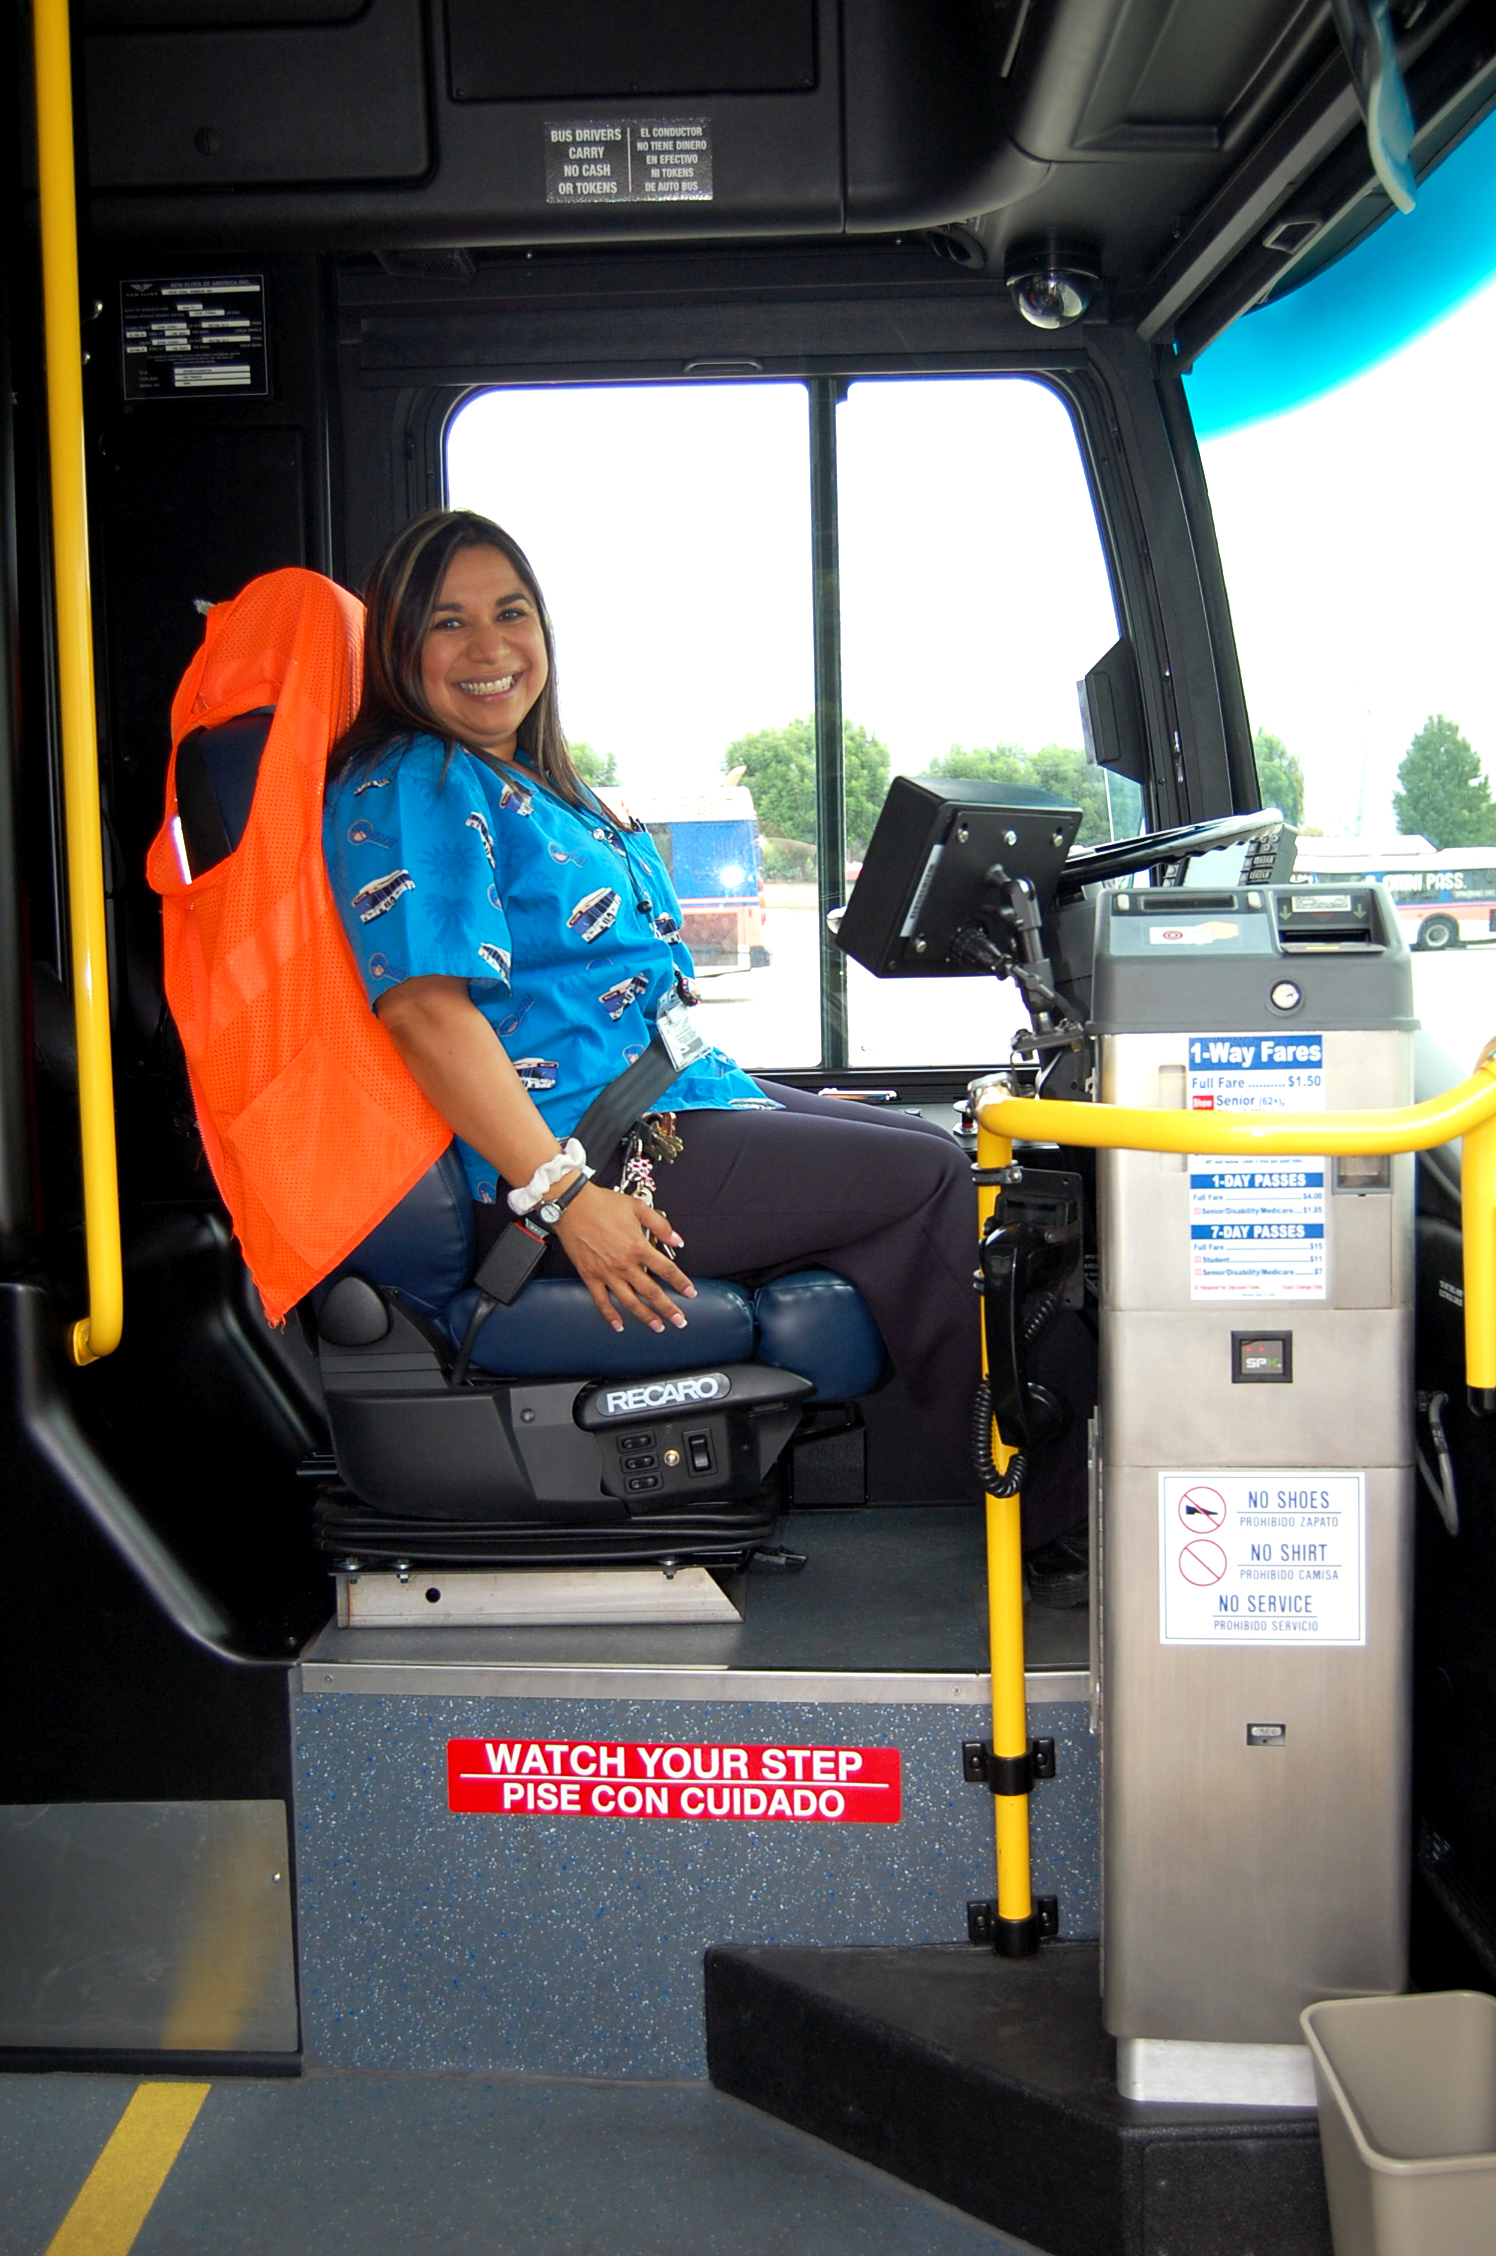 Driver welcomes passenger aboard the Omnitrans New Flyer Xcelsior bus